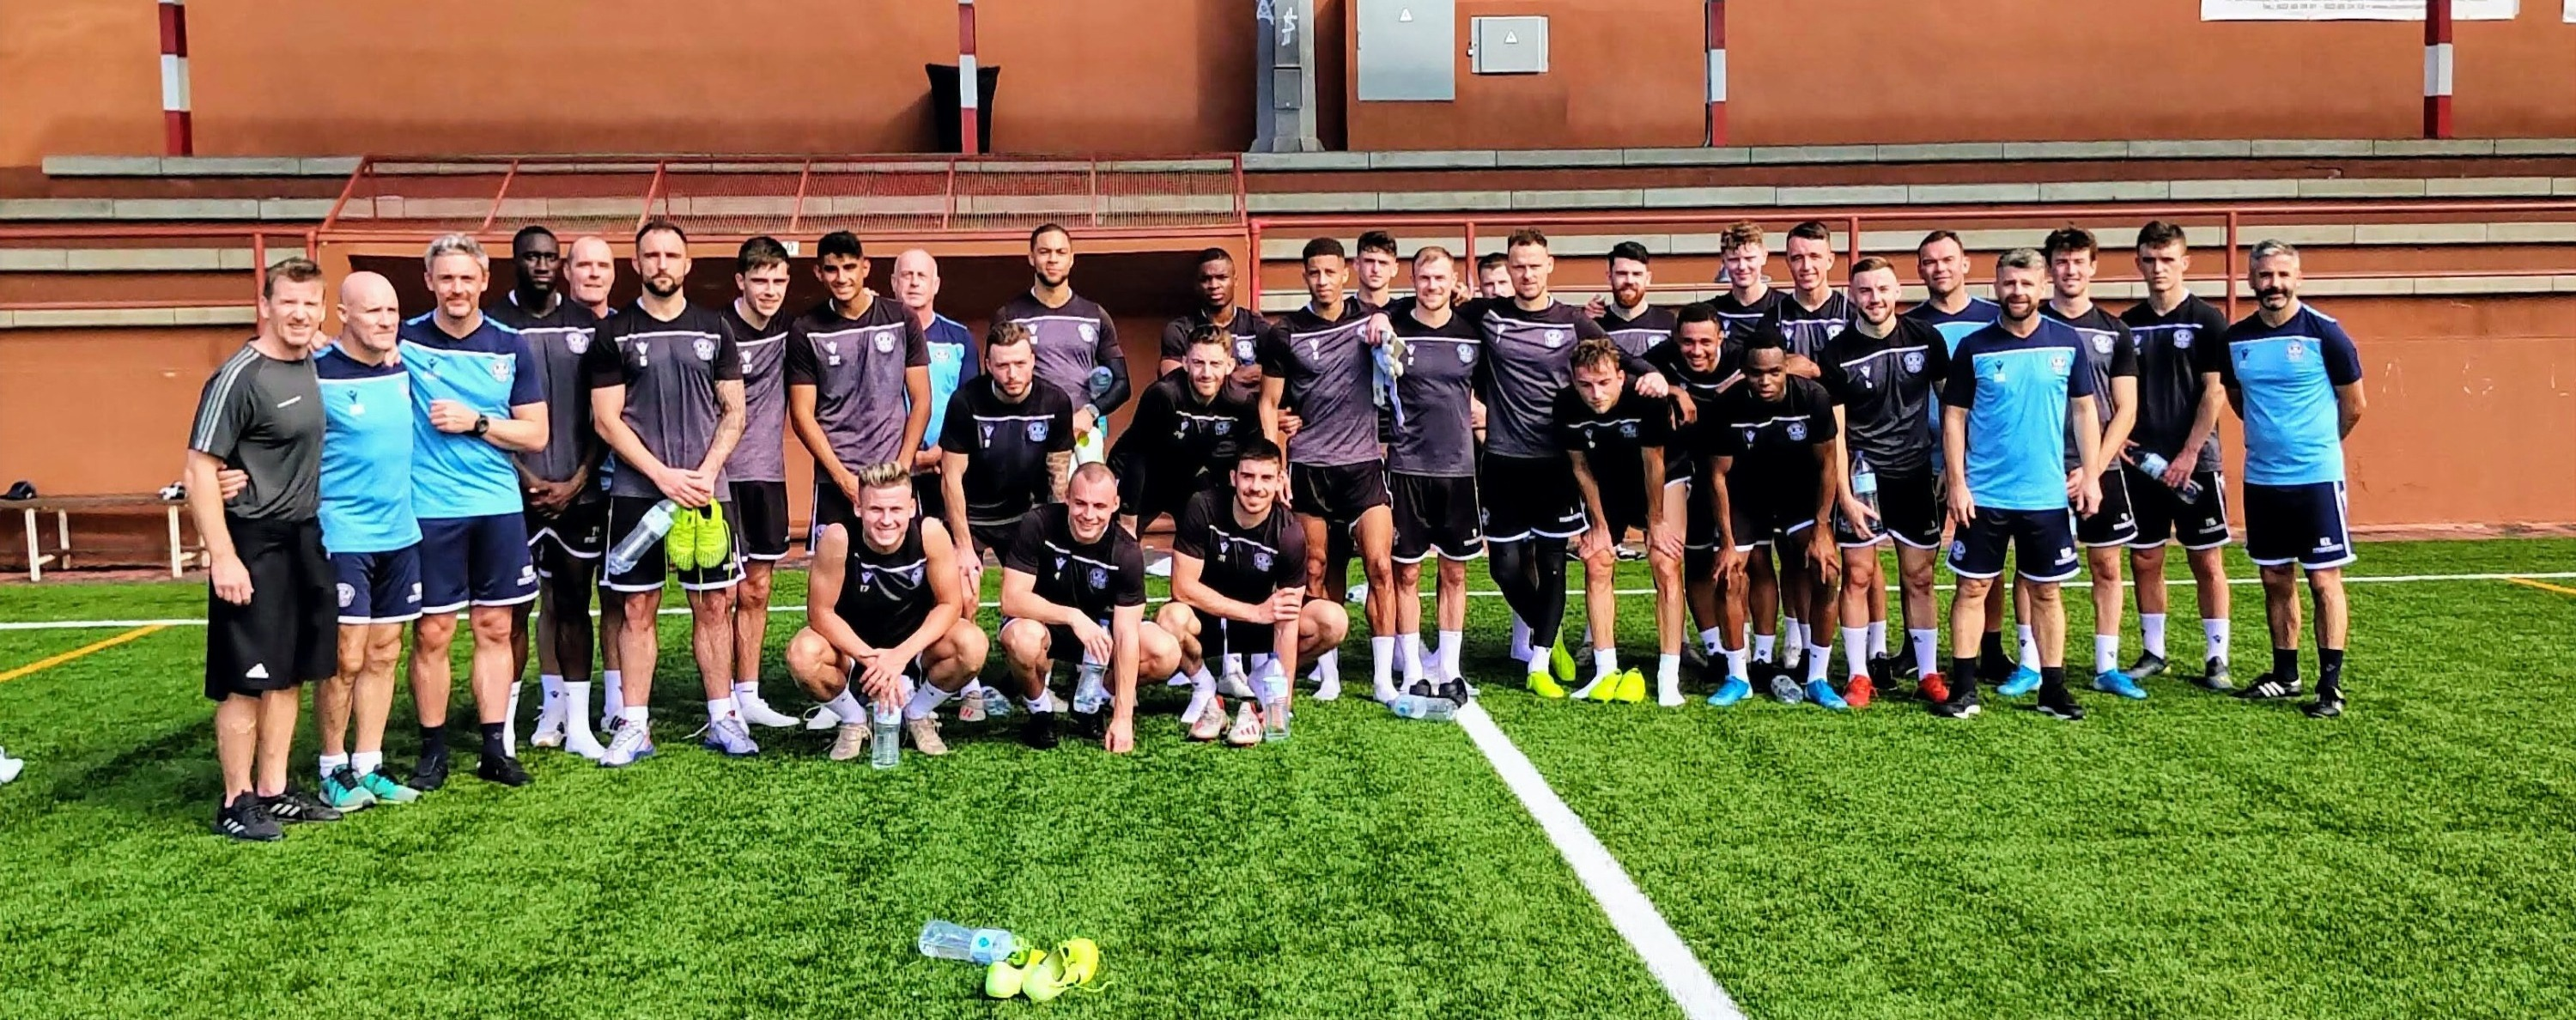 SCOTTISH PREMIER LEAGUE TEAMS WORK WITH US FOR SPANISH TRAINING CAMPS